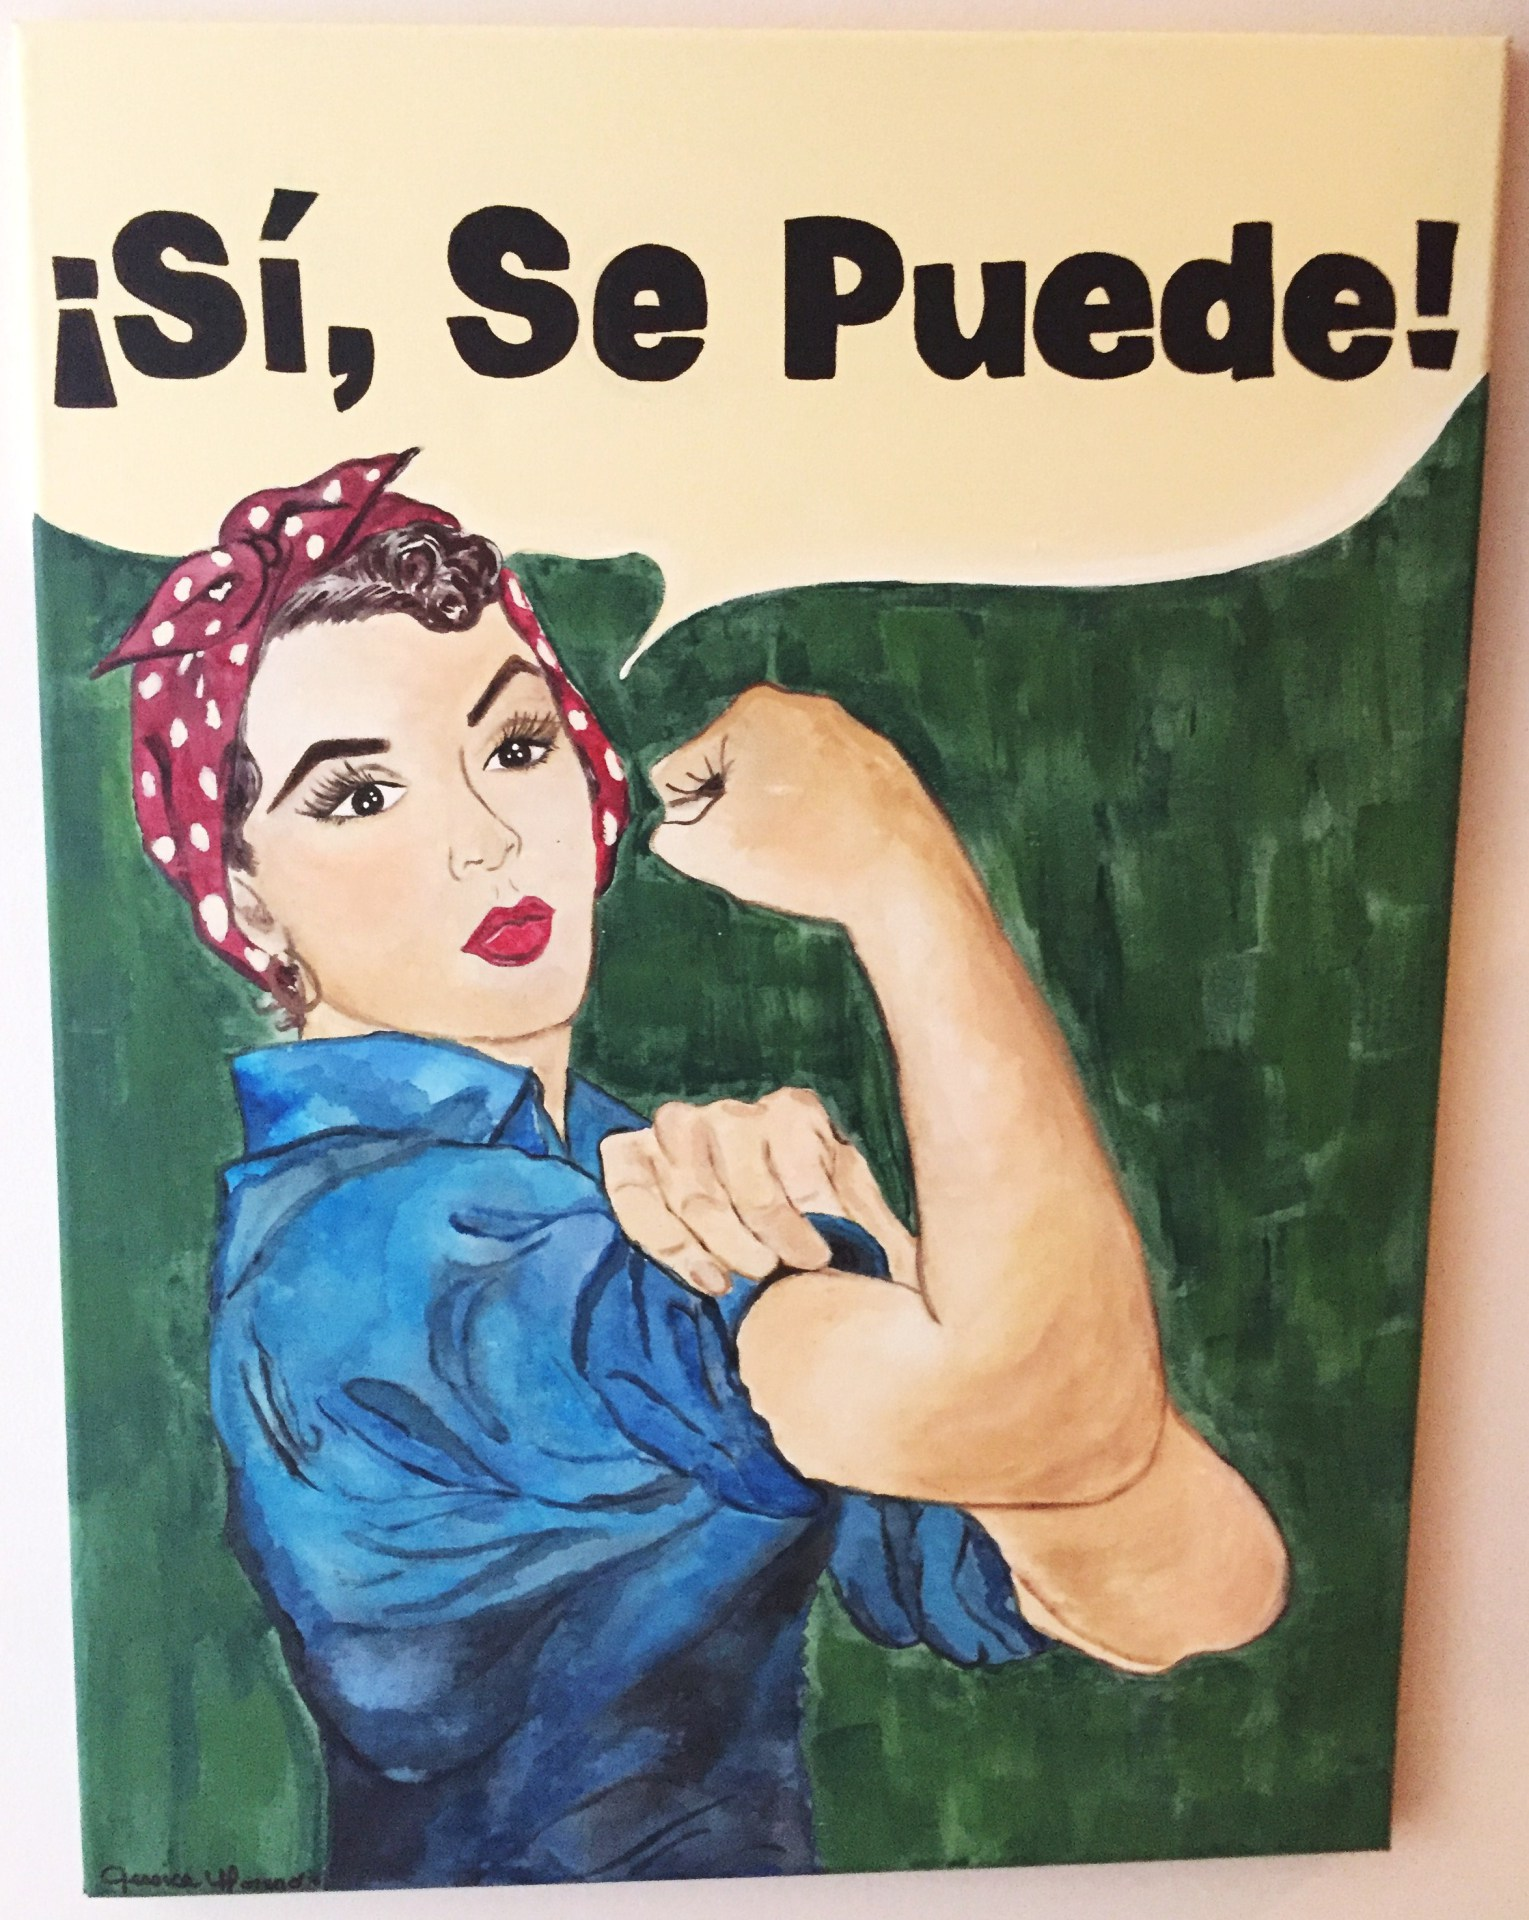 Latina Rosie the Riveter